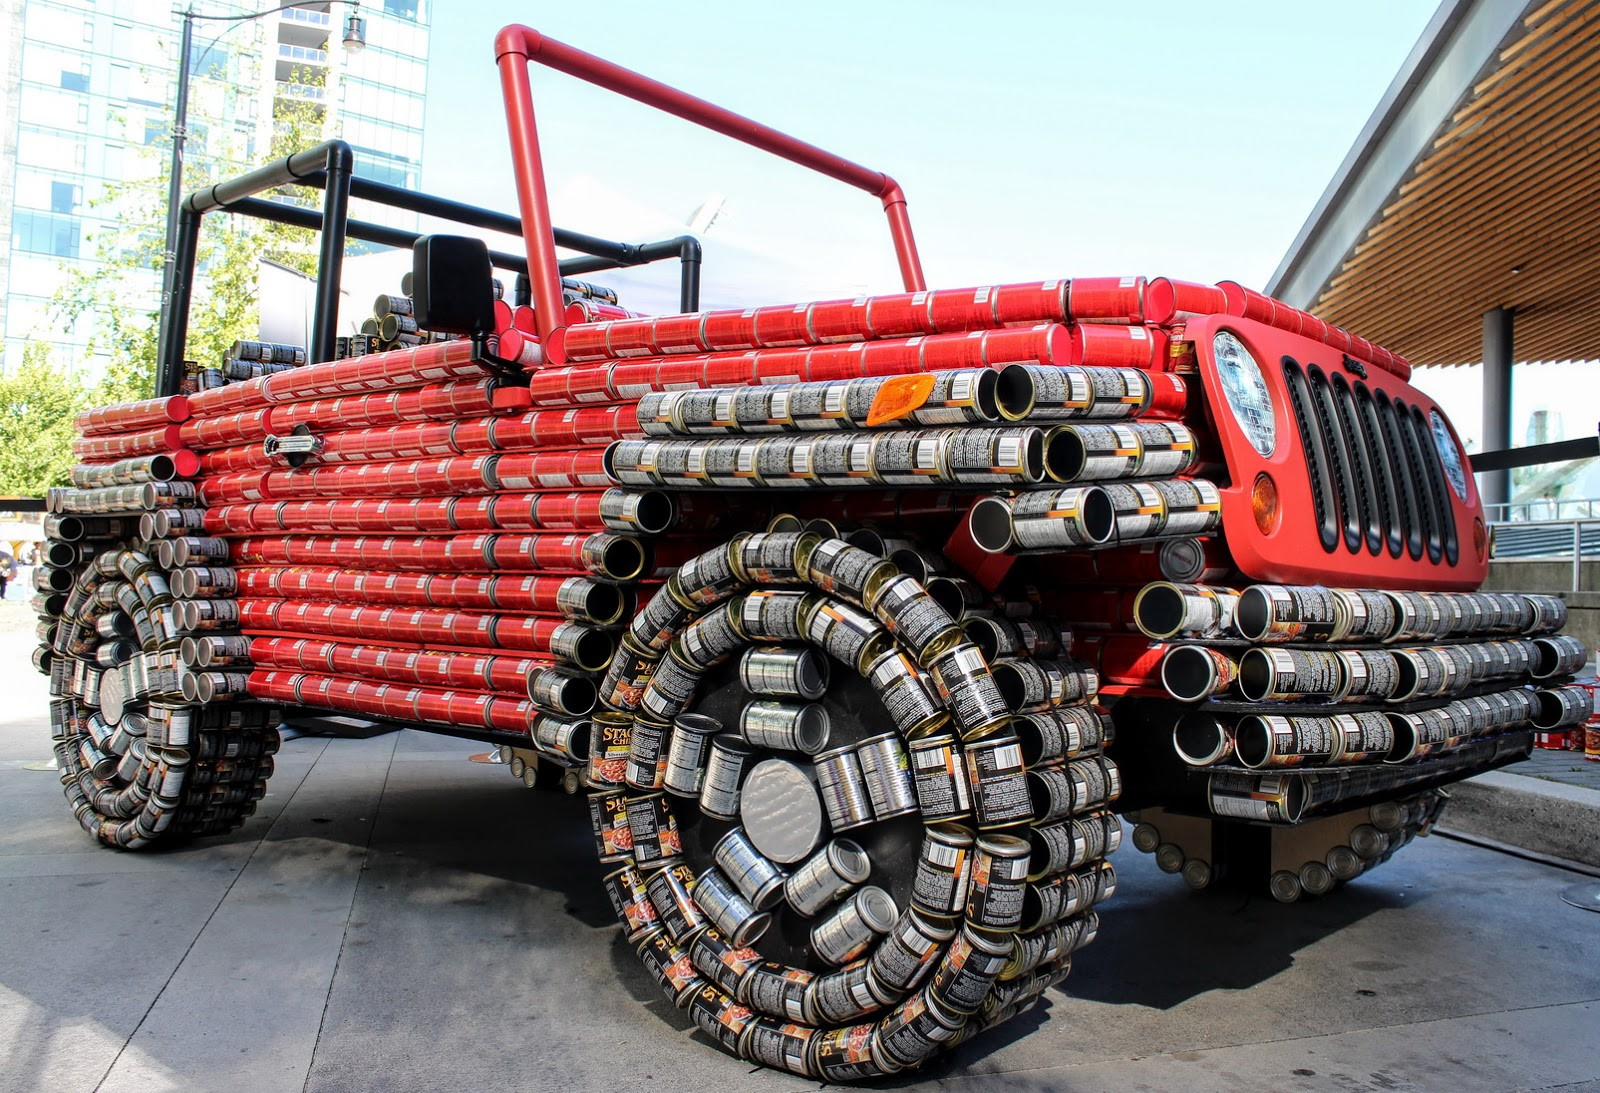 Koenigsegg Ccxr Trevita >> This Jeep Wrangler Is Made Almost Entirely Out Of Food Cans | Carscoops